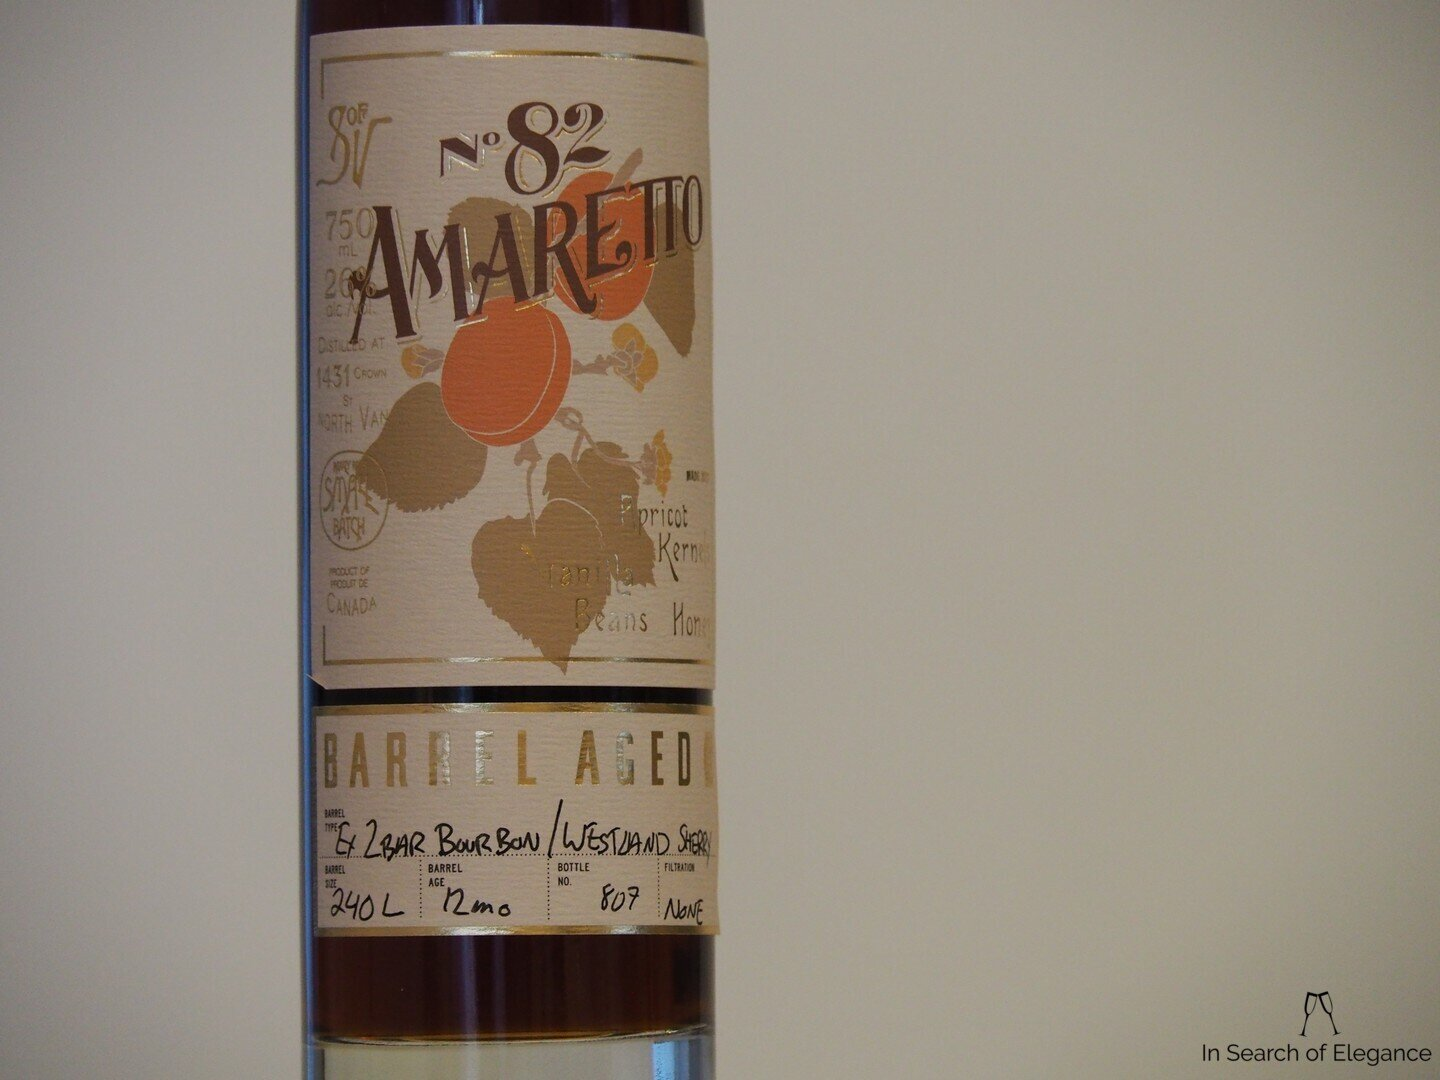 Sons of Vancouver Barrel Aged Amaretto 1.jpg